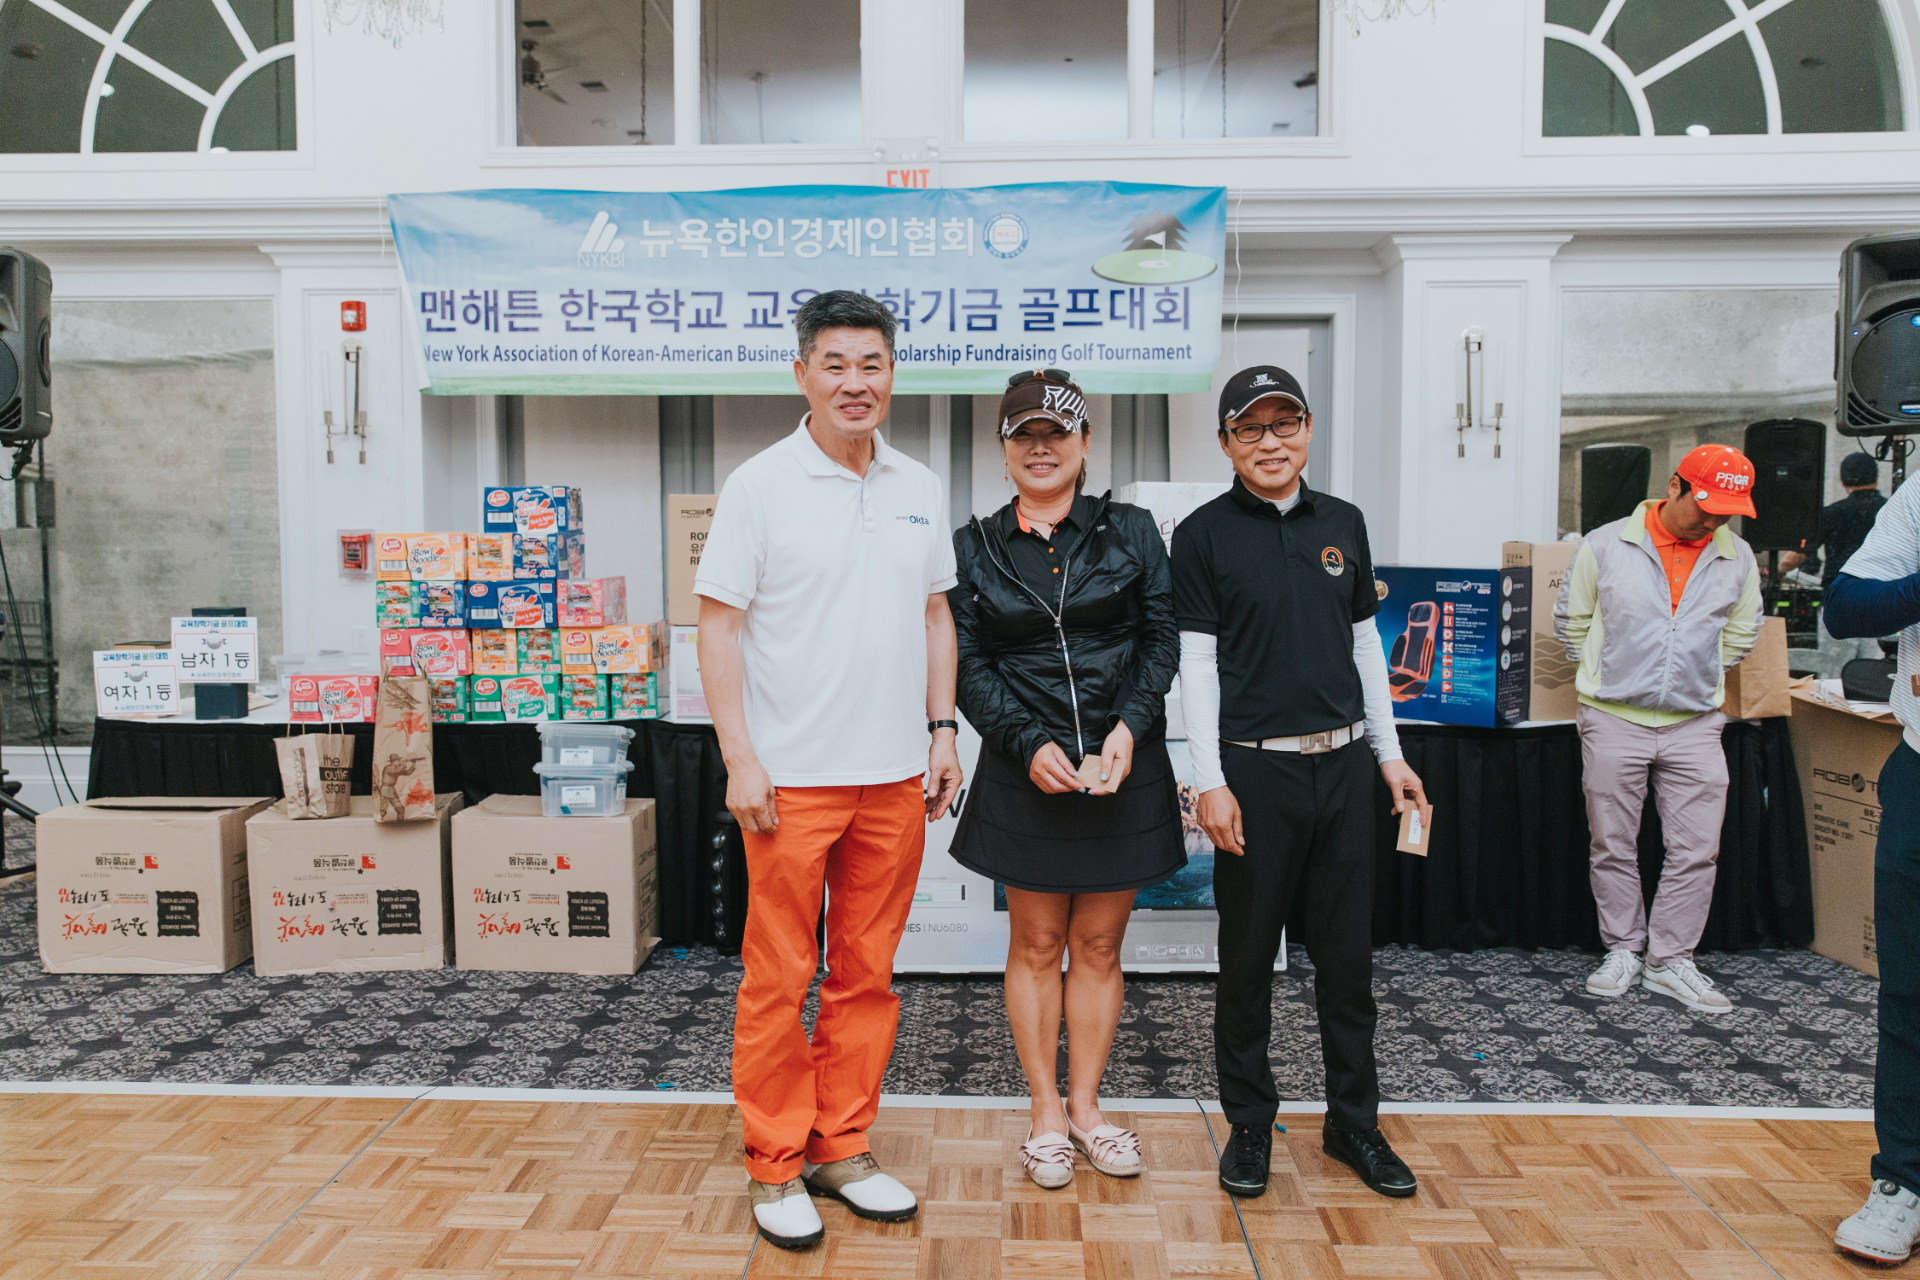 https://nykbi.com/new/wp-content/uploads/2019/07/190619-Scholarship-Fundraising-Golf-Tournament-054.jpg